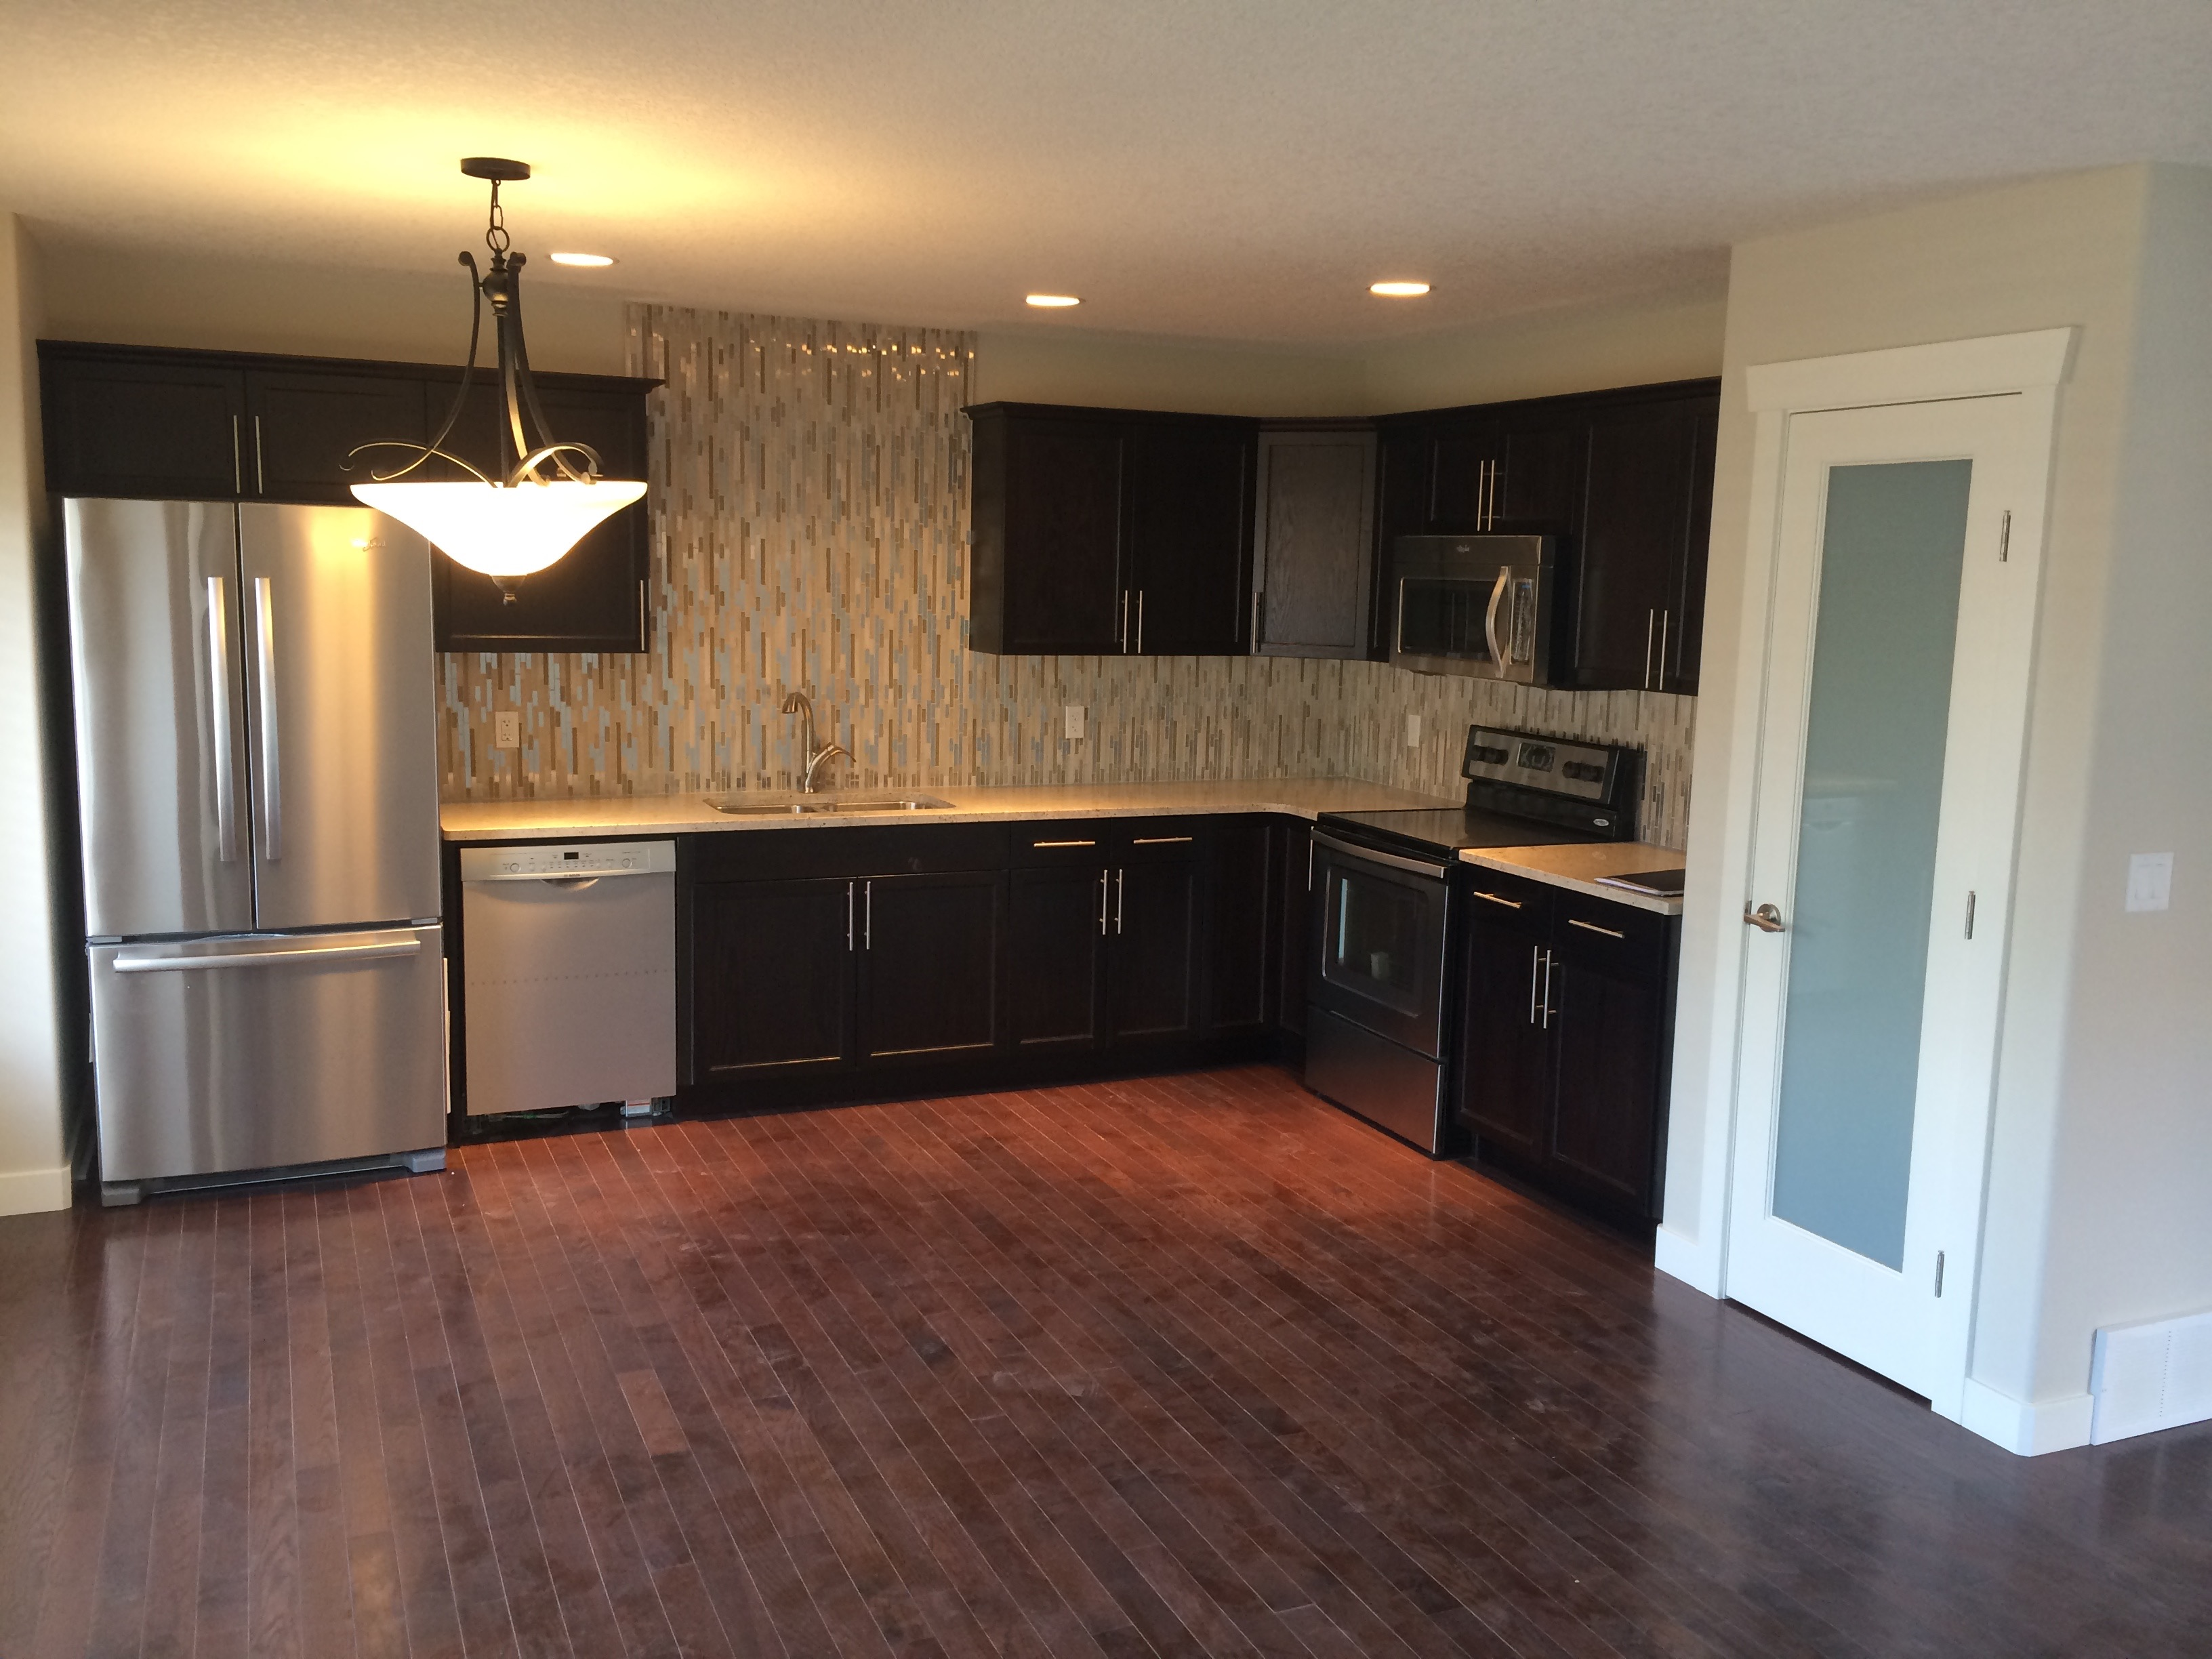 3 Bedroom 2 bath DOWNTOWN Townhouse, 9648 106 ave $1600